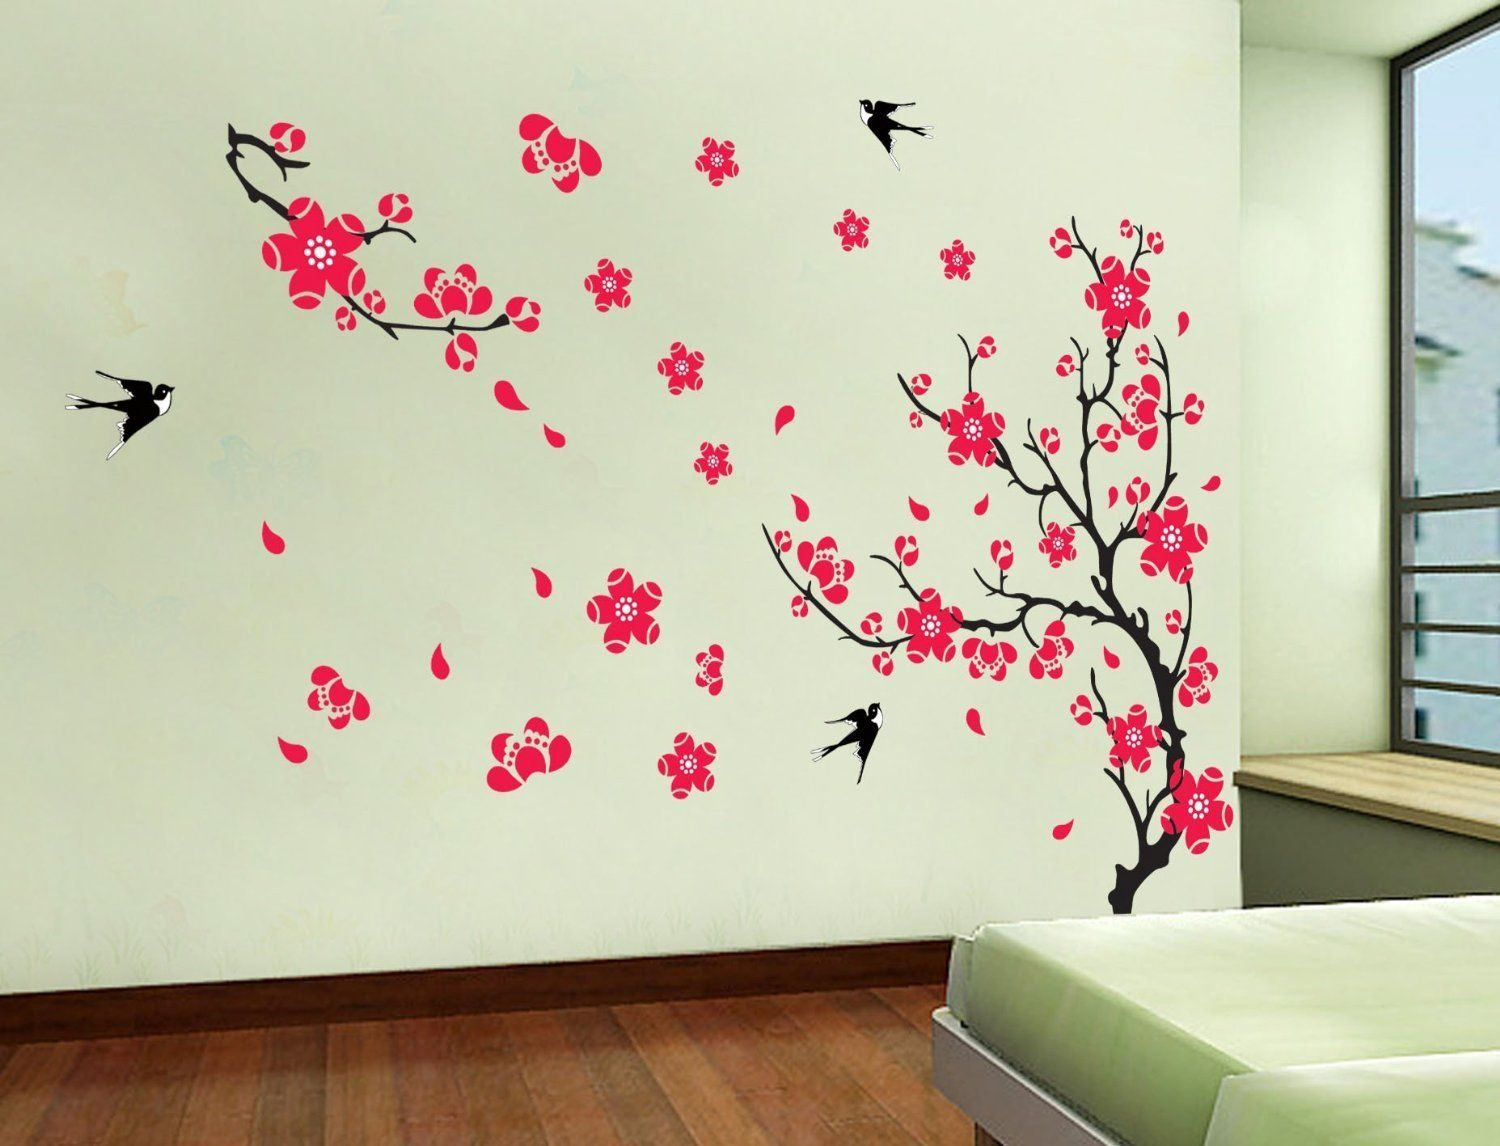 Best Images About Wall Decals On Pinterest Diy Wall Wall - Diy wall decor birds